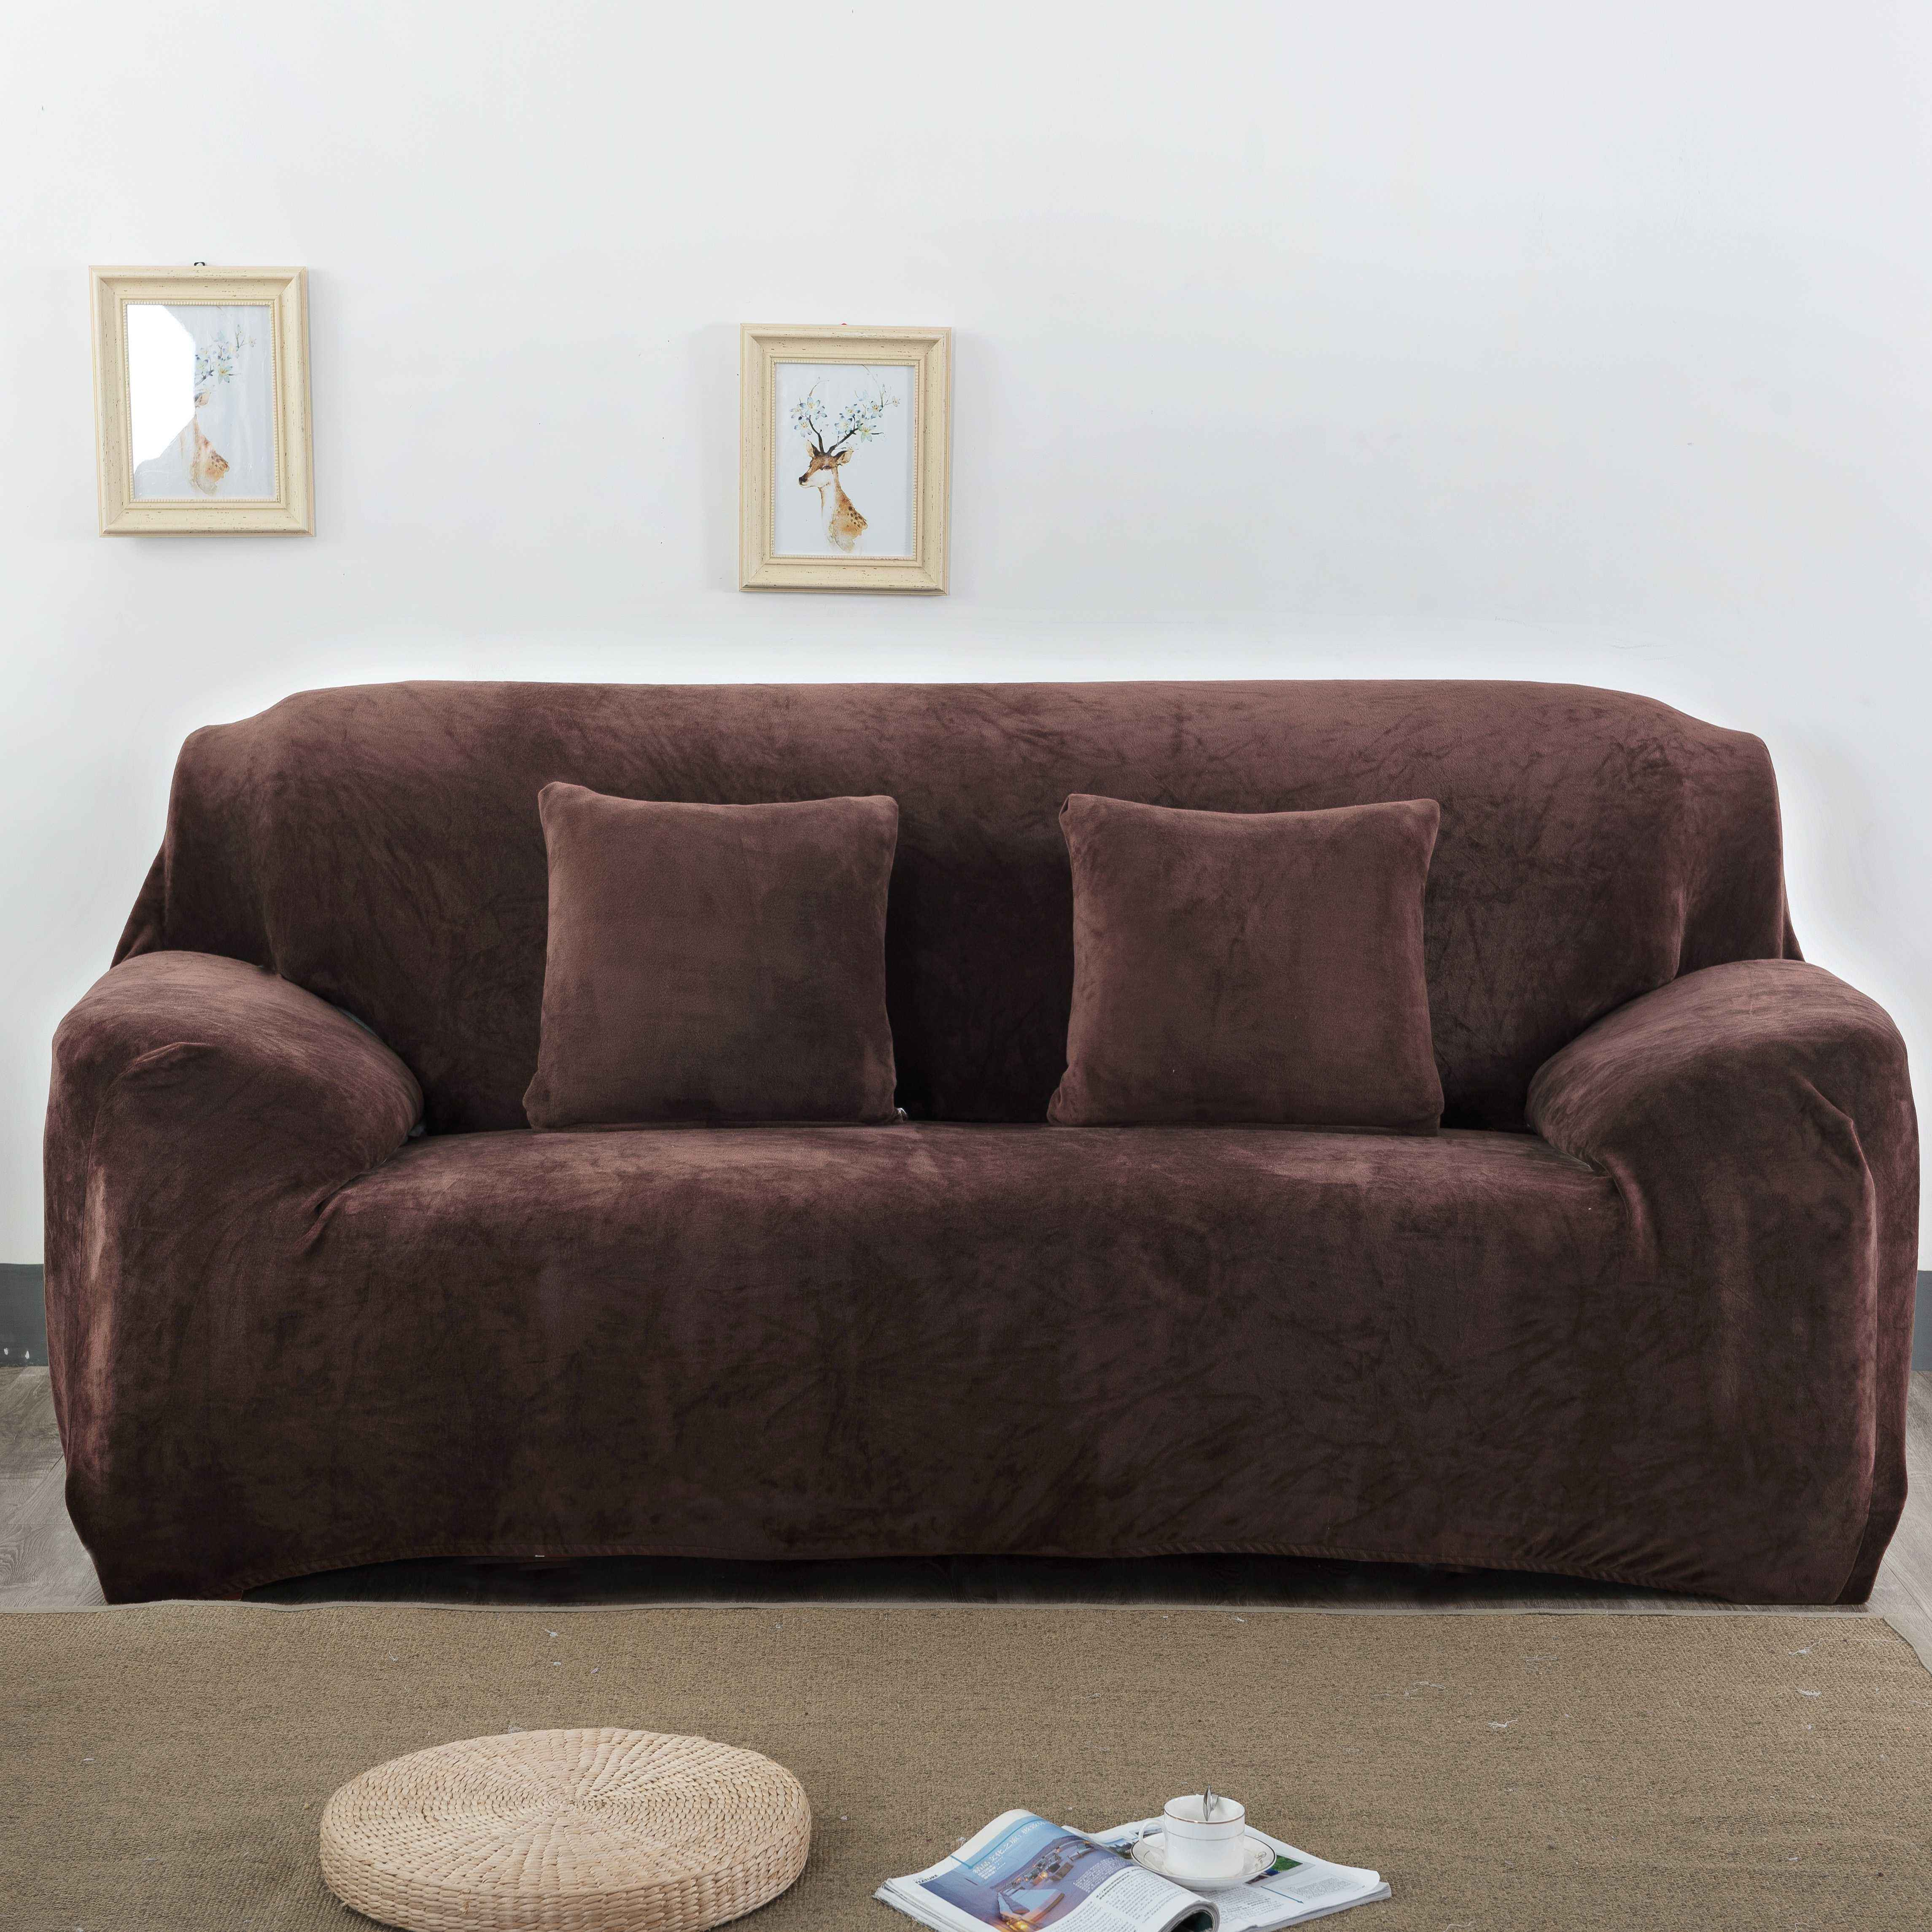 wholesale plush dust-proof stretchable 1 2 3 4 5 seater sofa cover set